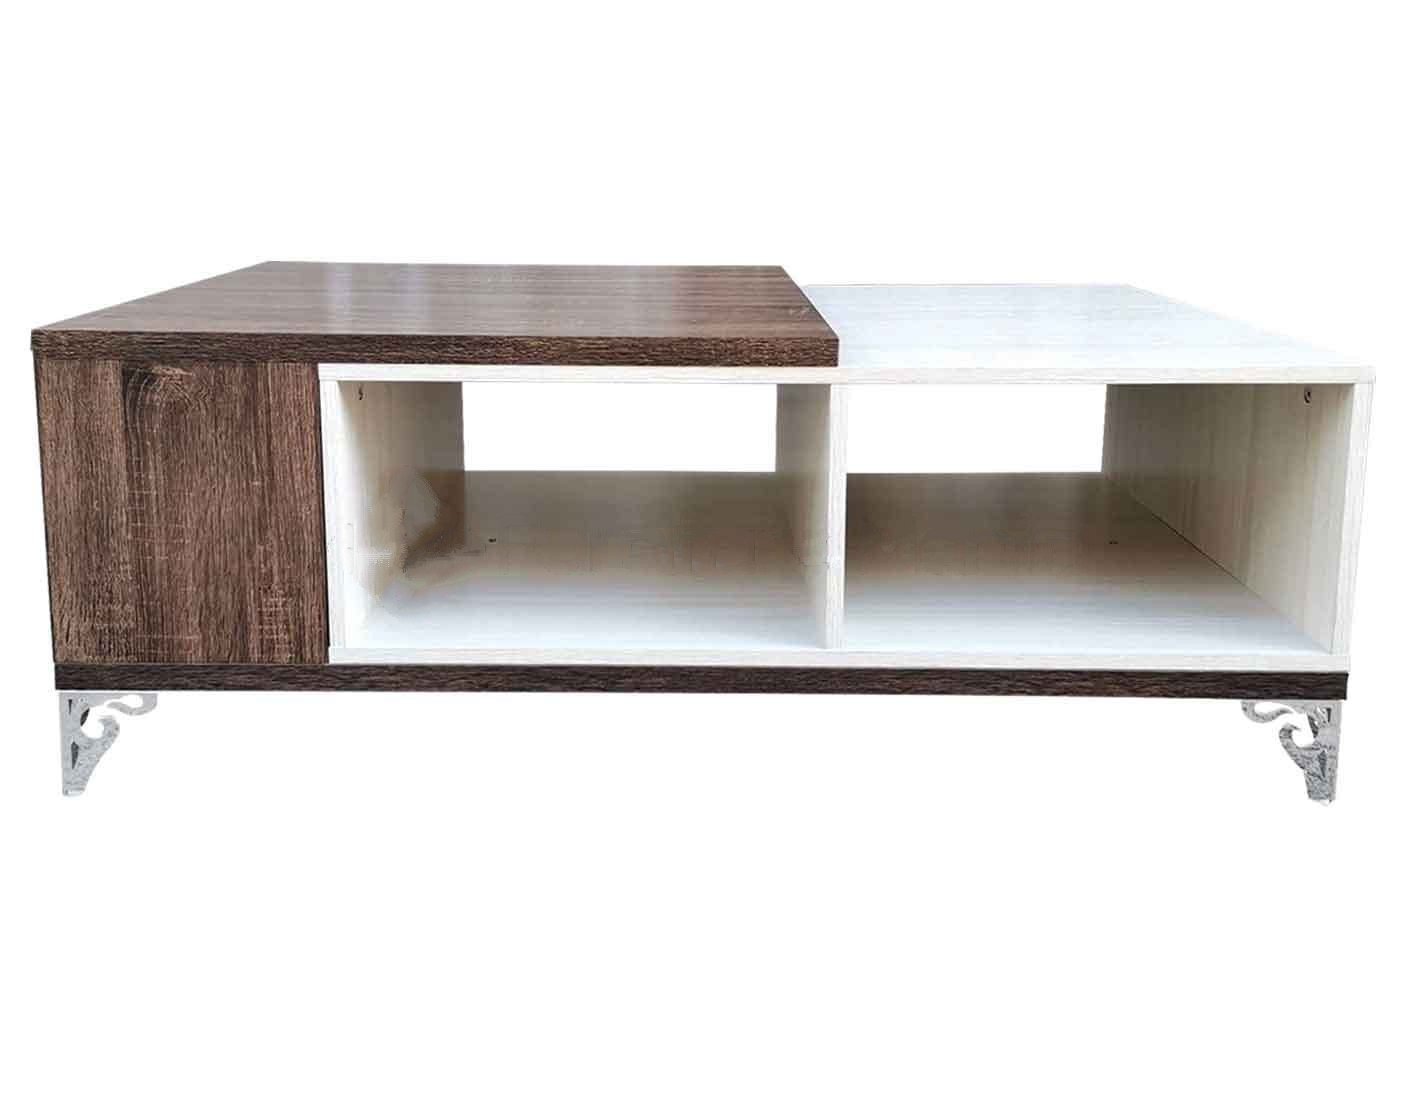 wooden modern multi functional coffee dining table wooden center table low accent table modern cocktail table with storage drawers for small